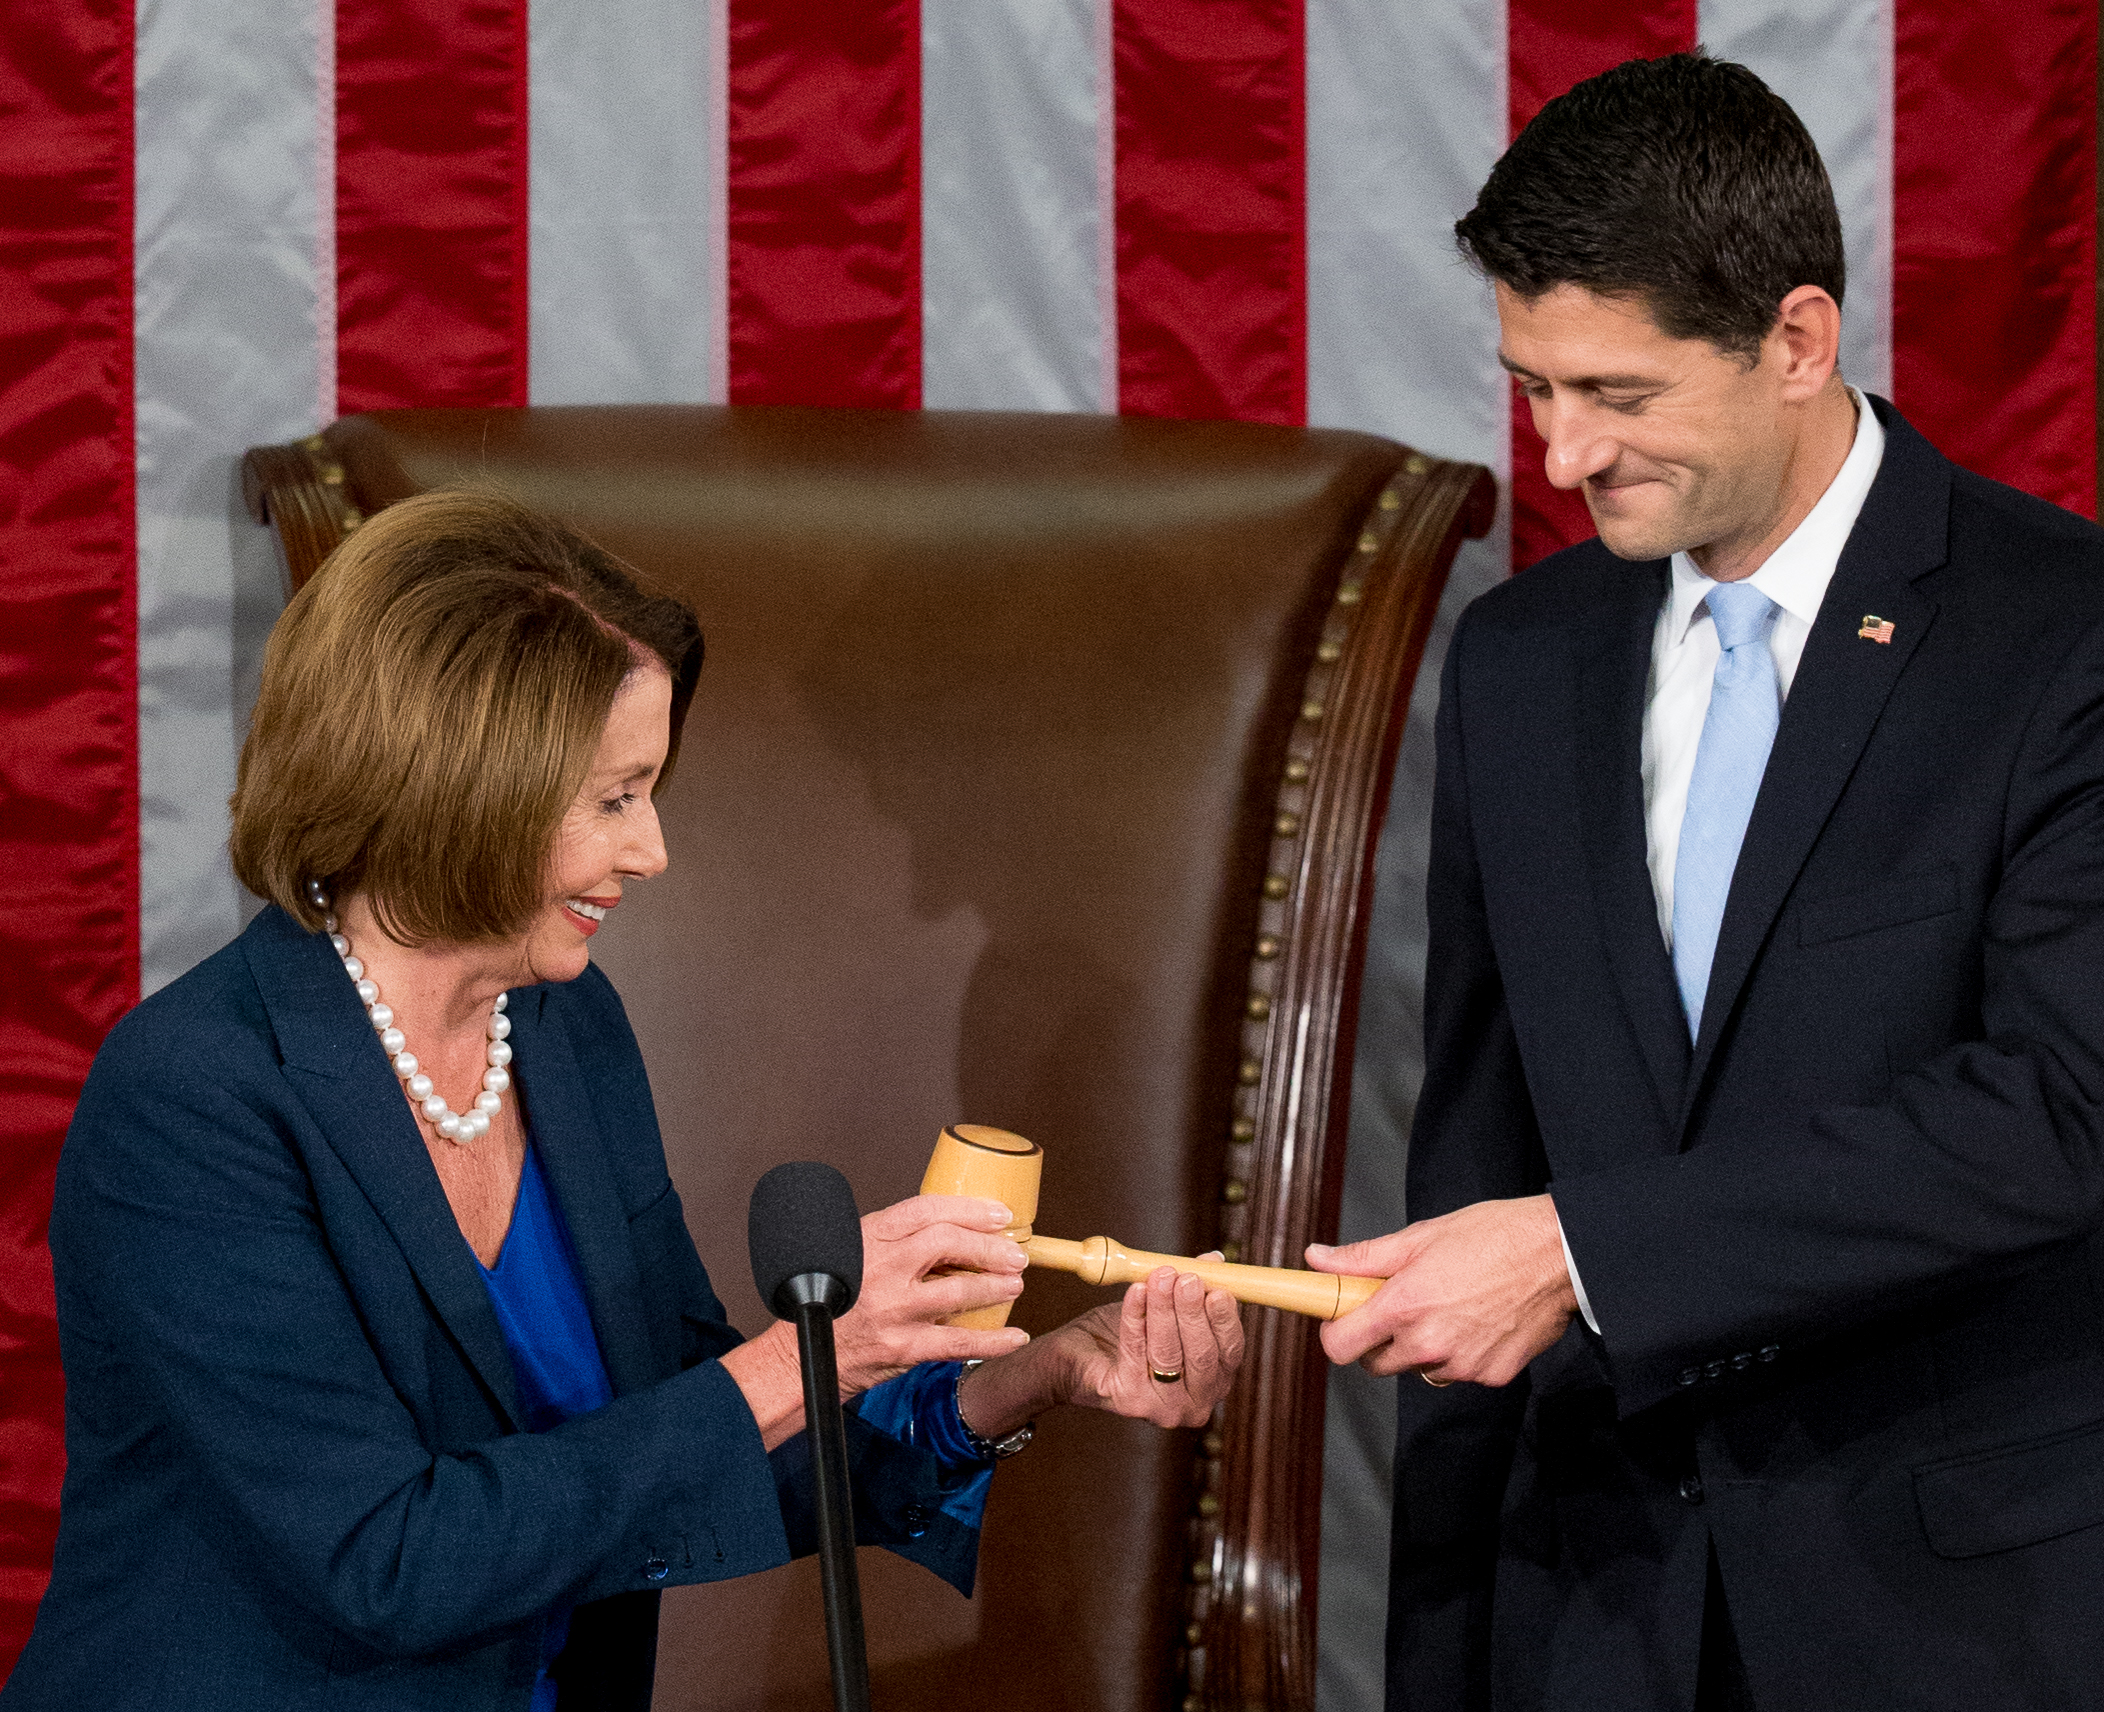 Newly elected House Speaker Paul Ryan of Wis., receives the Speaker's gavel from House Minority Leader Nancy Pelosi of Calif., in the House Chamber on Capitol Hill in Washington, Oct. 29, 2015.